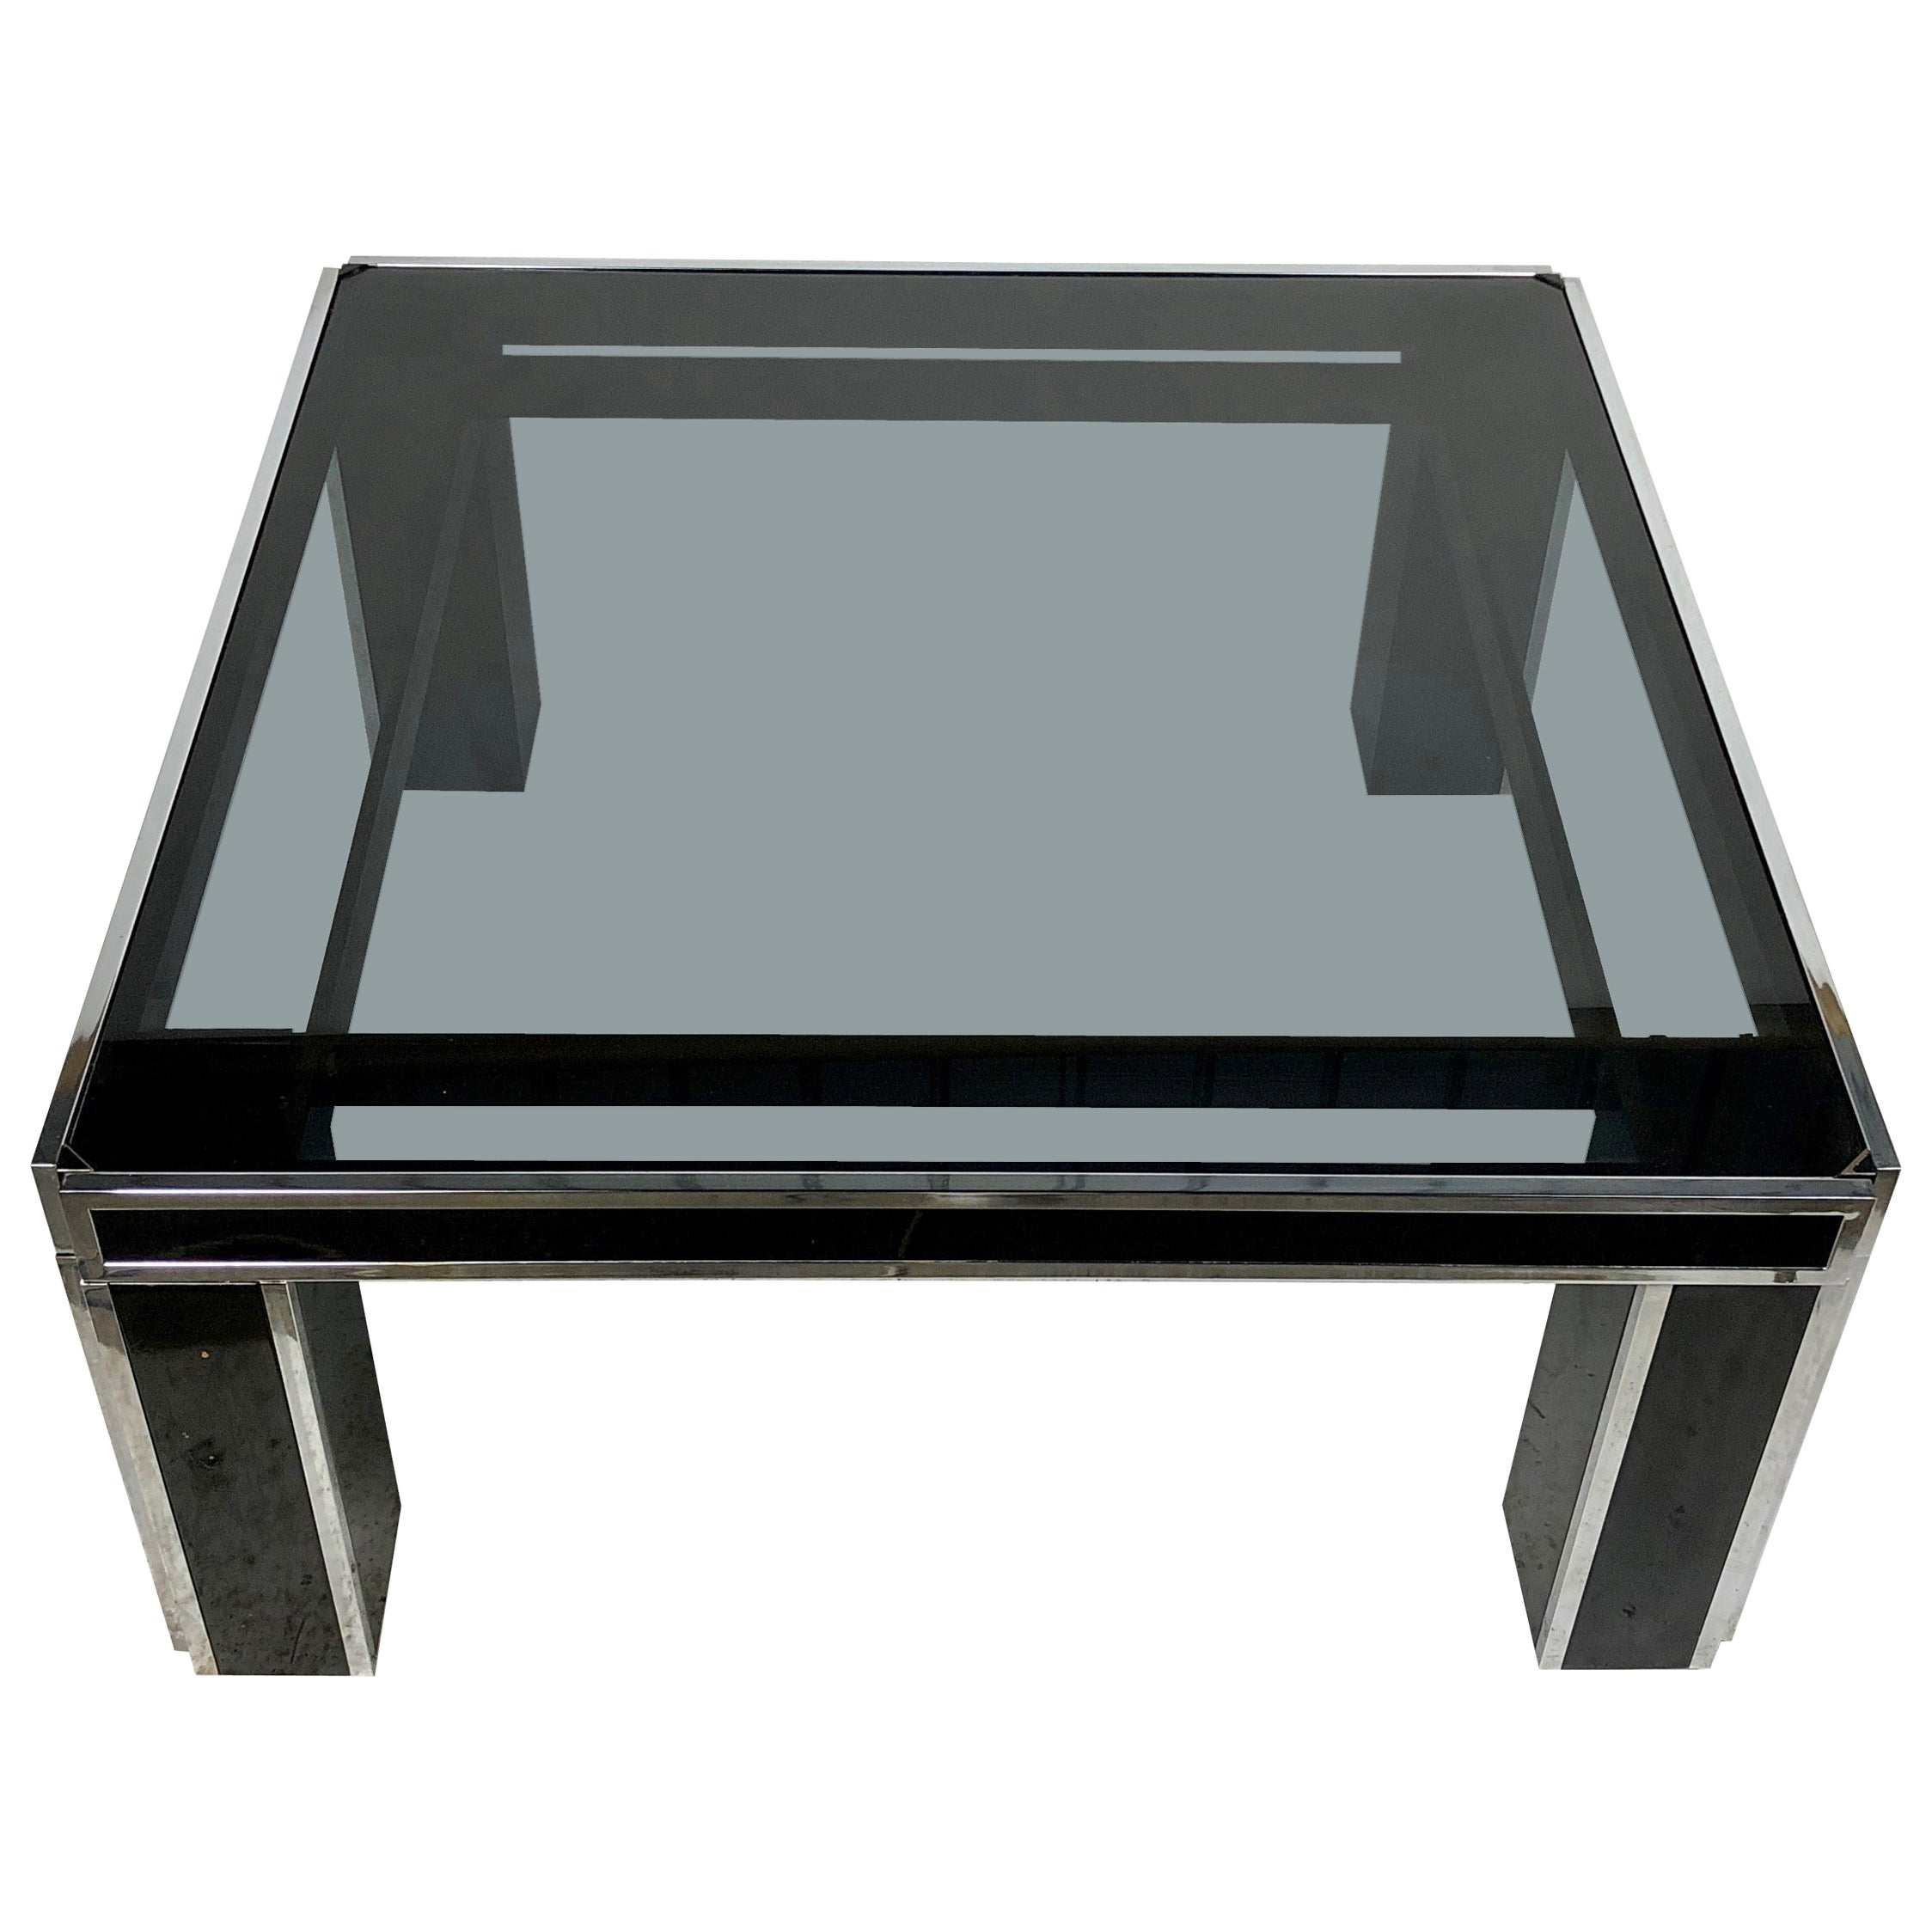 Black Coffee Table in Chrome and Smoked Glass Romeo Rega Style Italy, 1970s